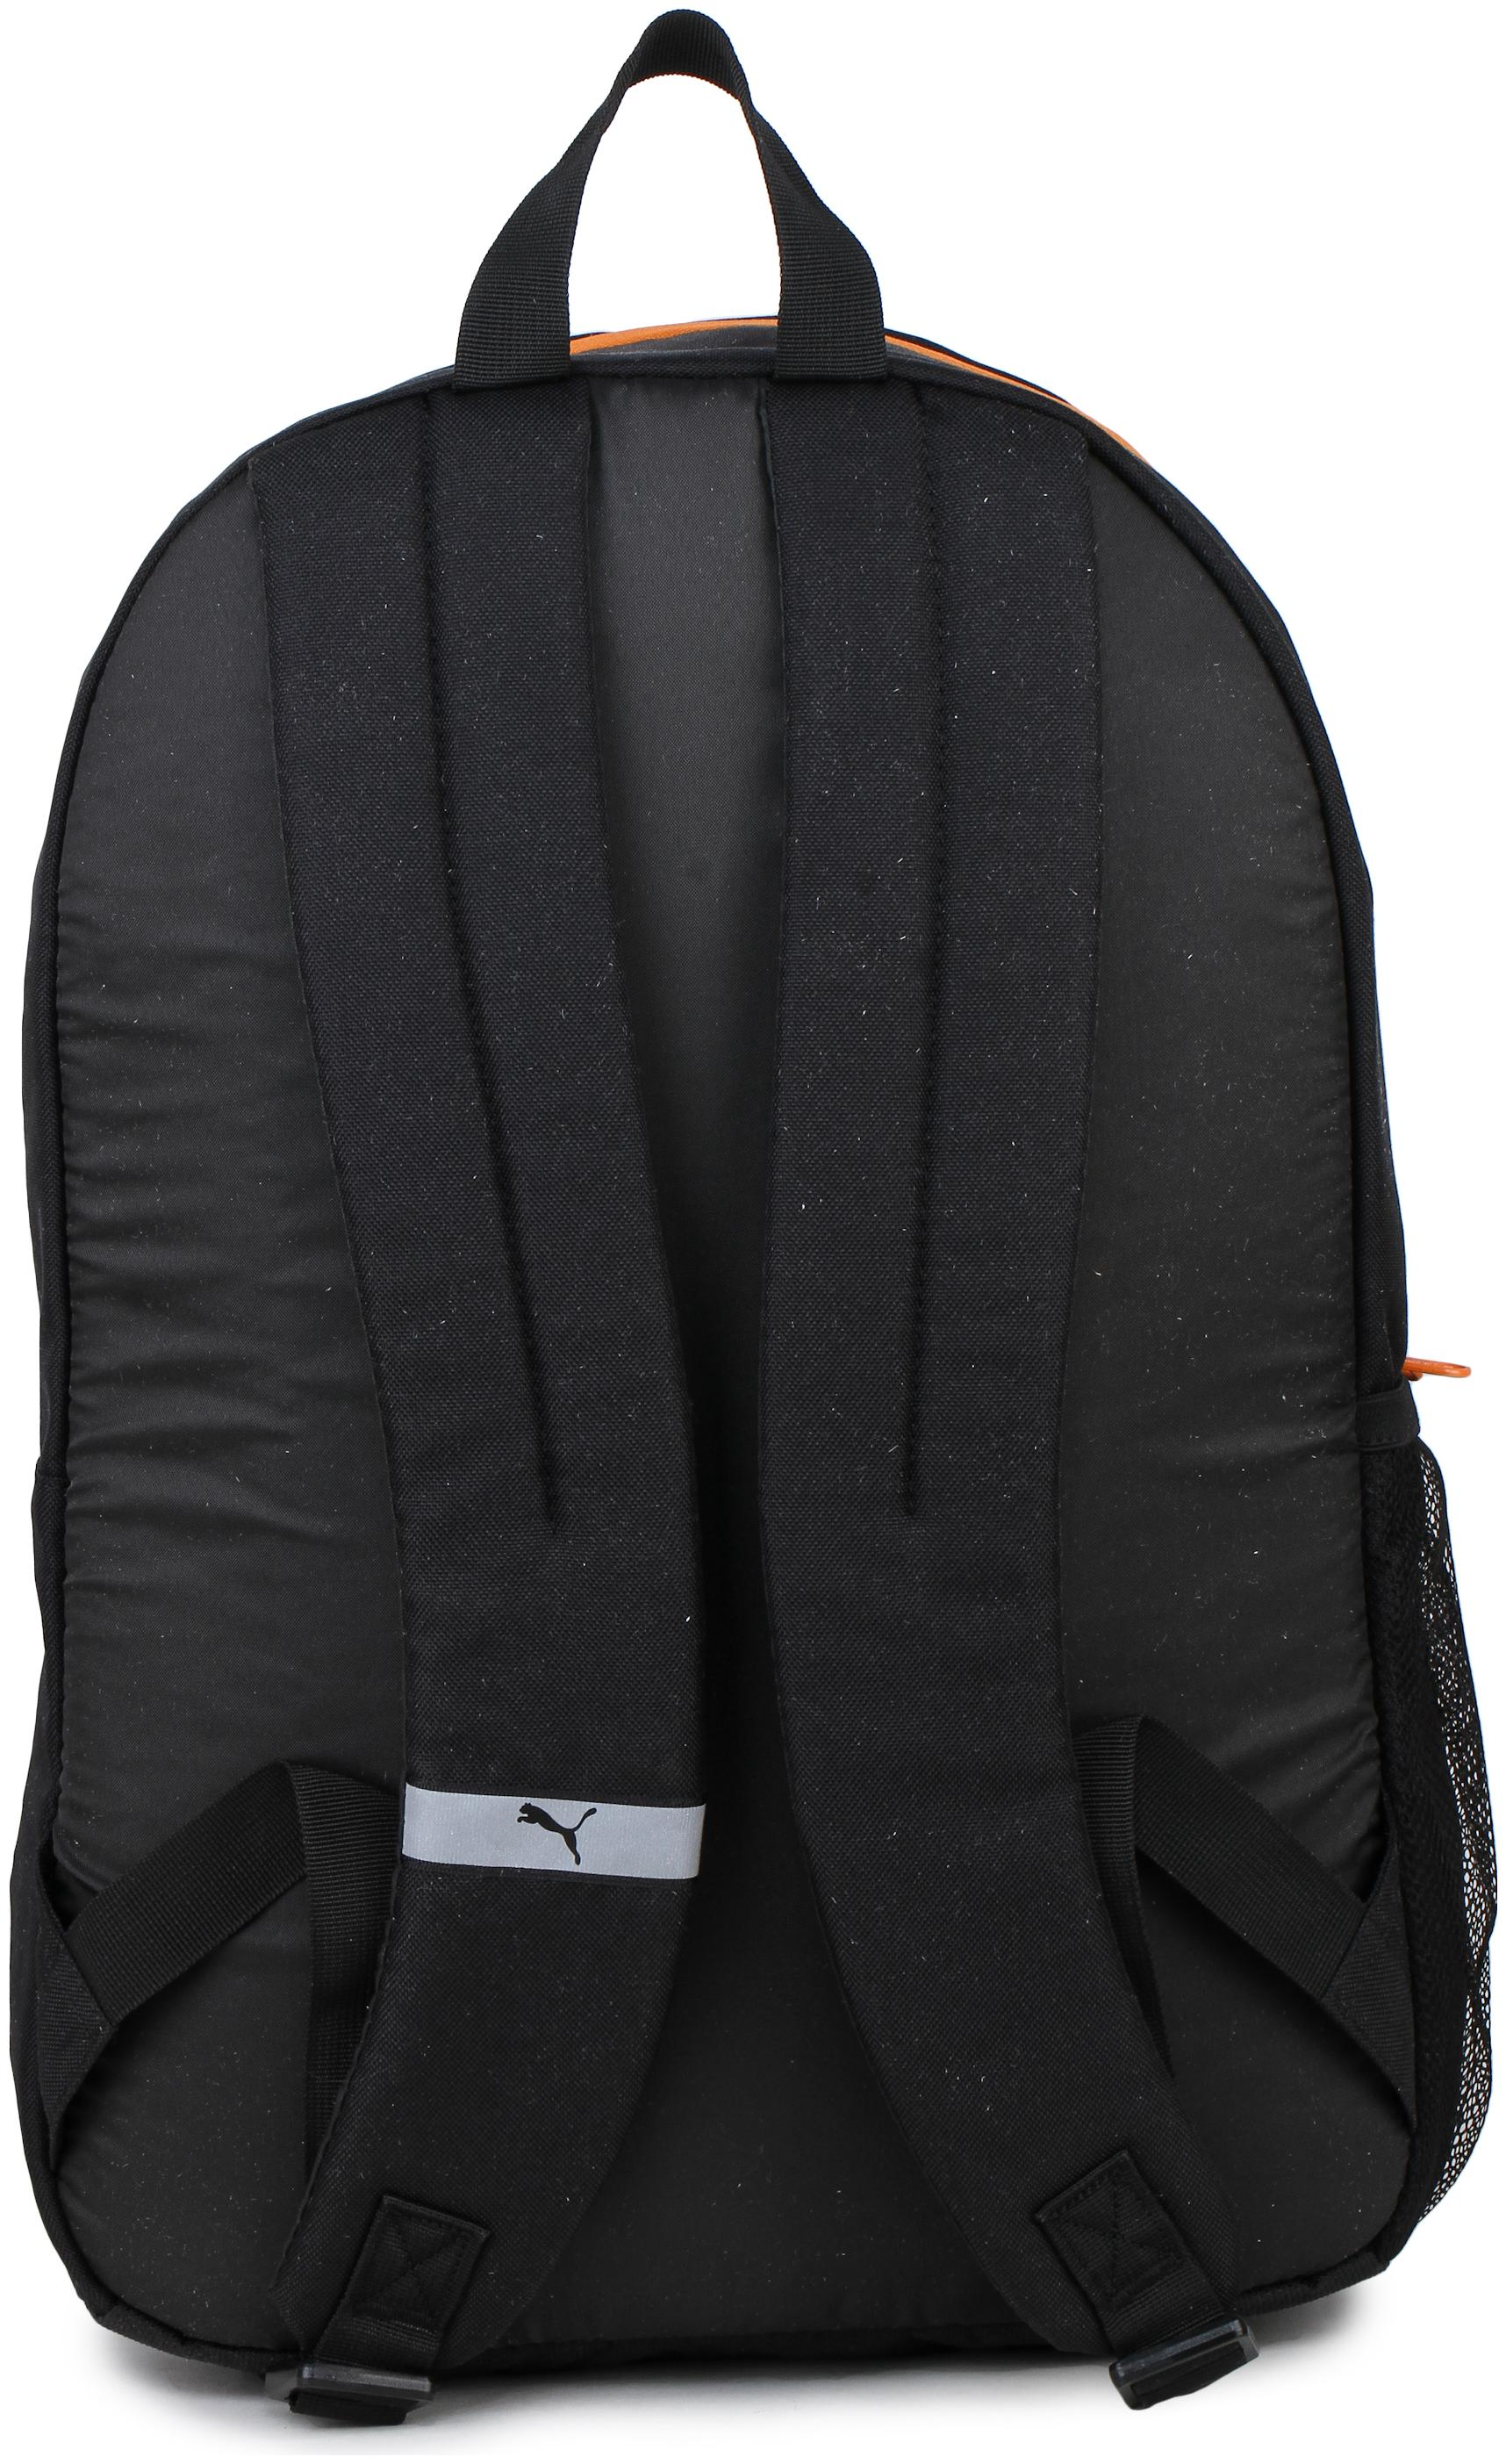 Buy Puma Unisex Black 1948 Graphic IND Backpack Online at Low Prices in  India - Paytmmall.com 193162b03e613